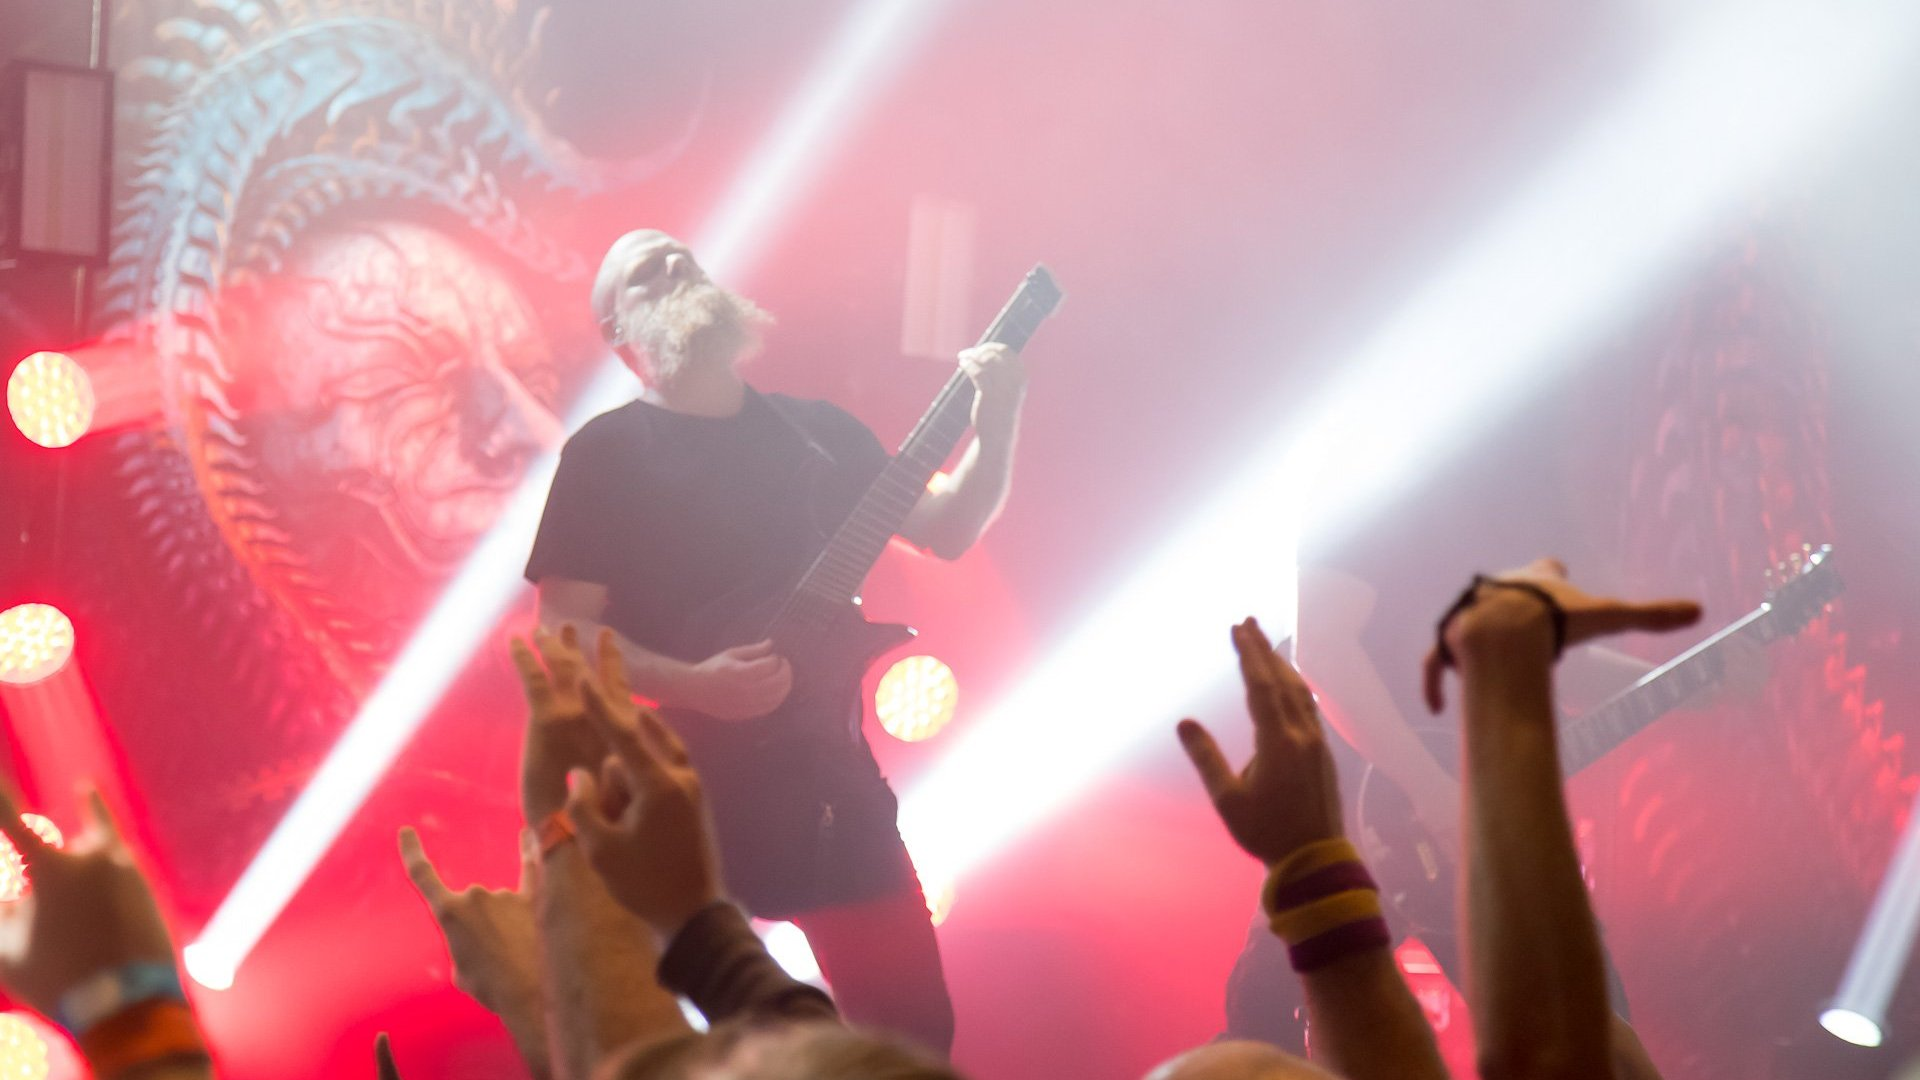 Per Nilsson on stage with Headless Guitar Boden Singularity 7-string Red Swirl